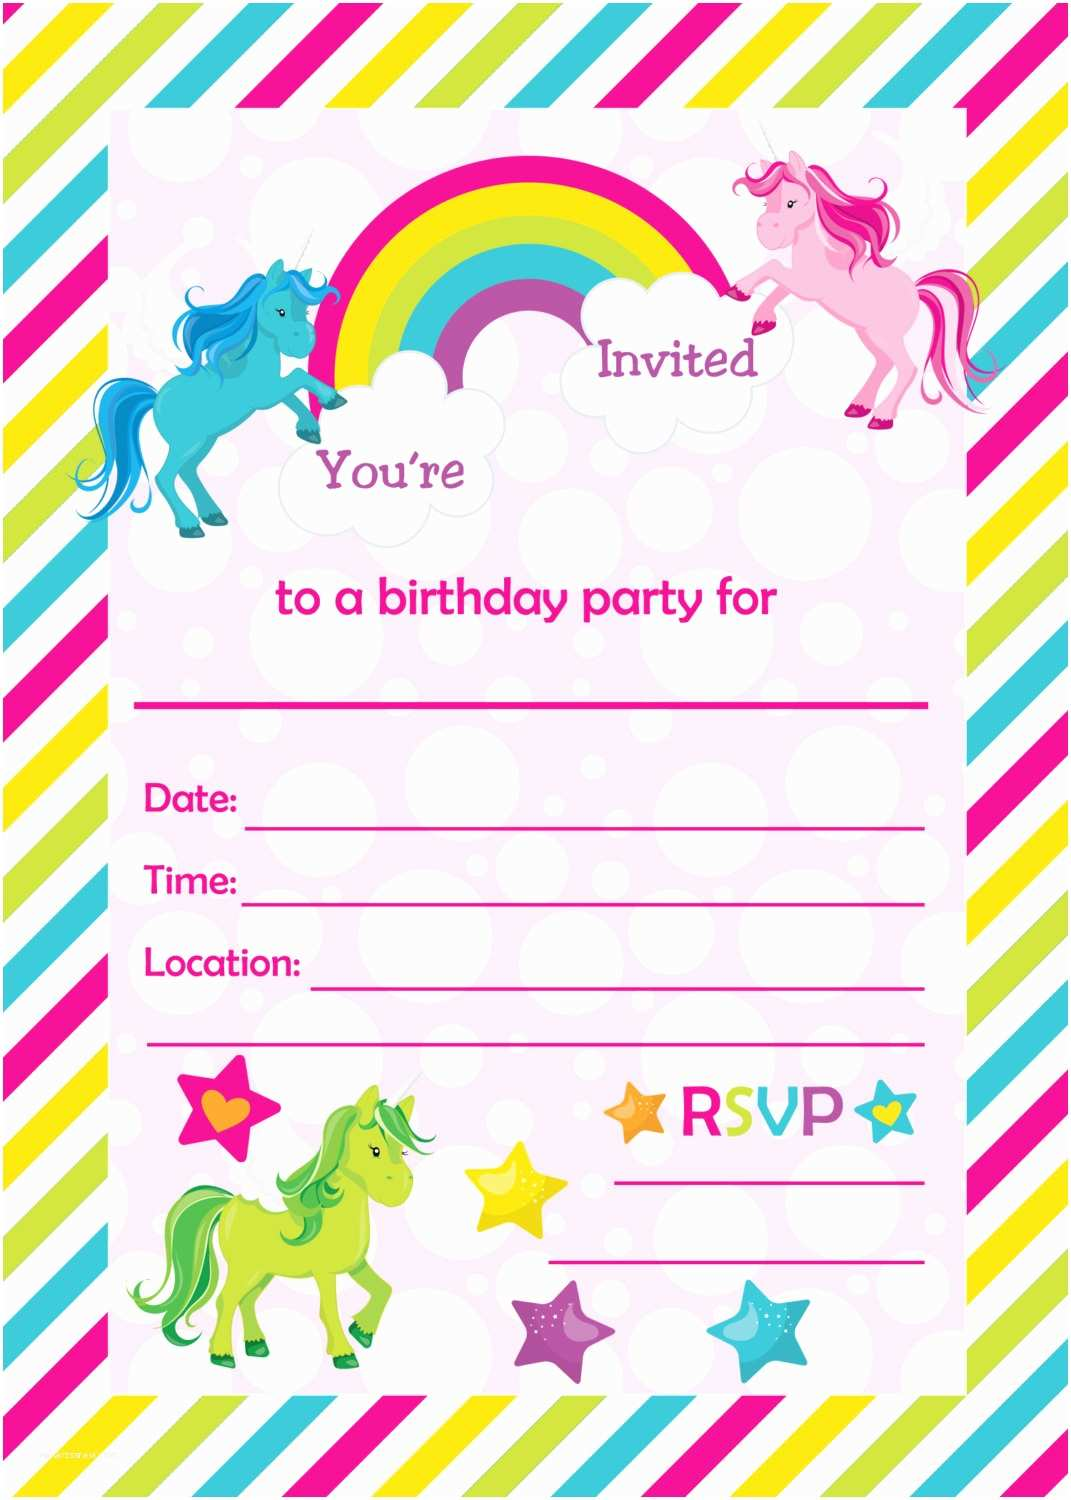 Birthday Party Invitation Template Free Printable Golden Unicorn Birthday Invitation Template